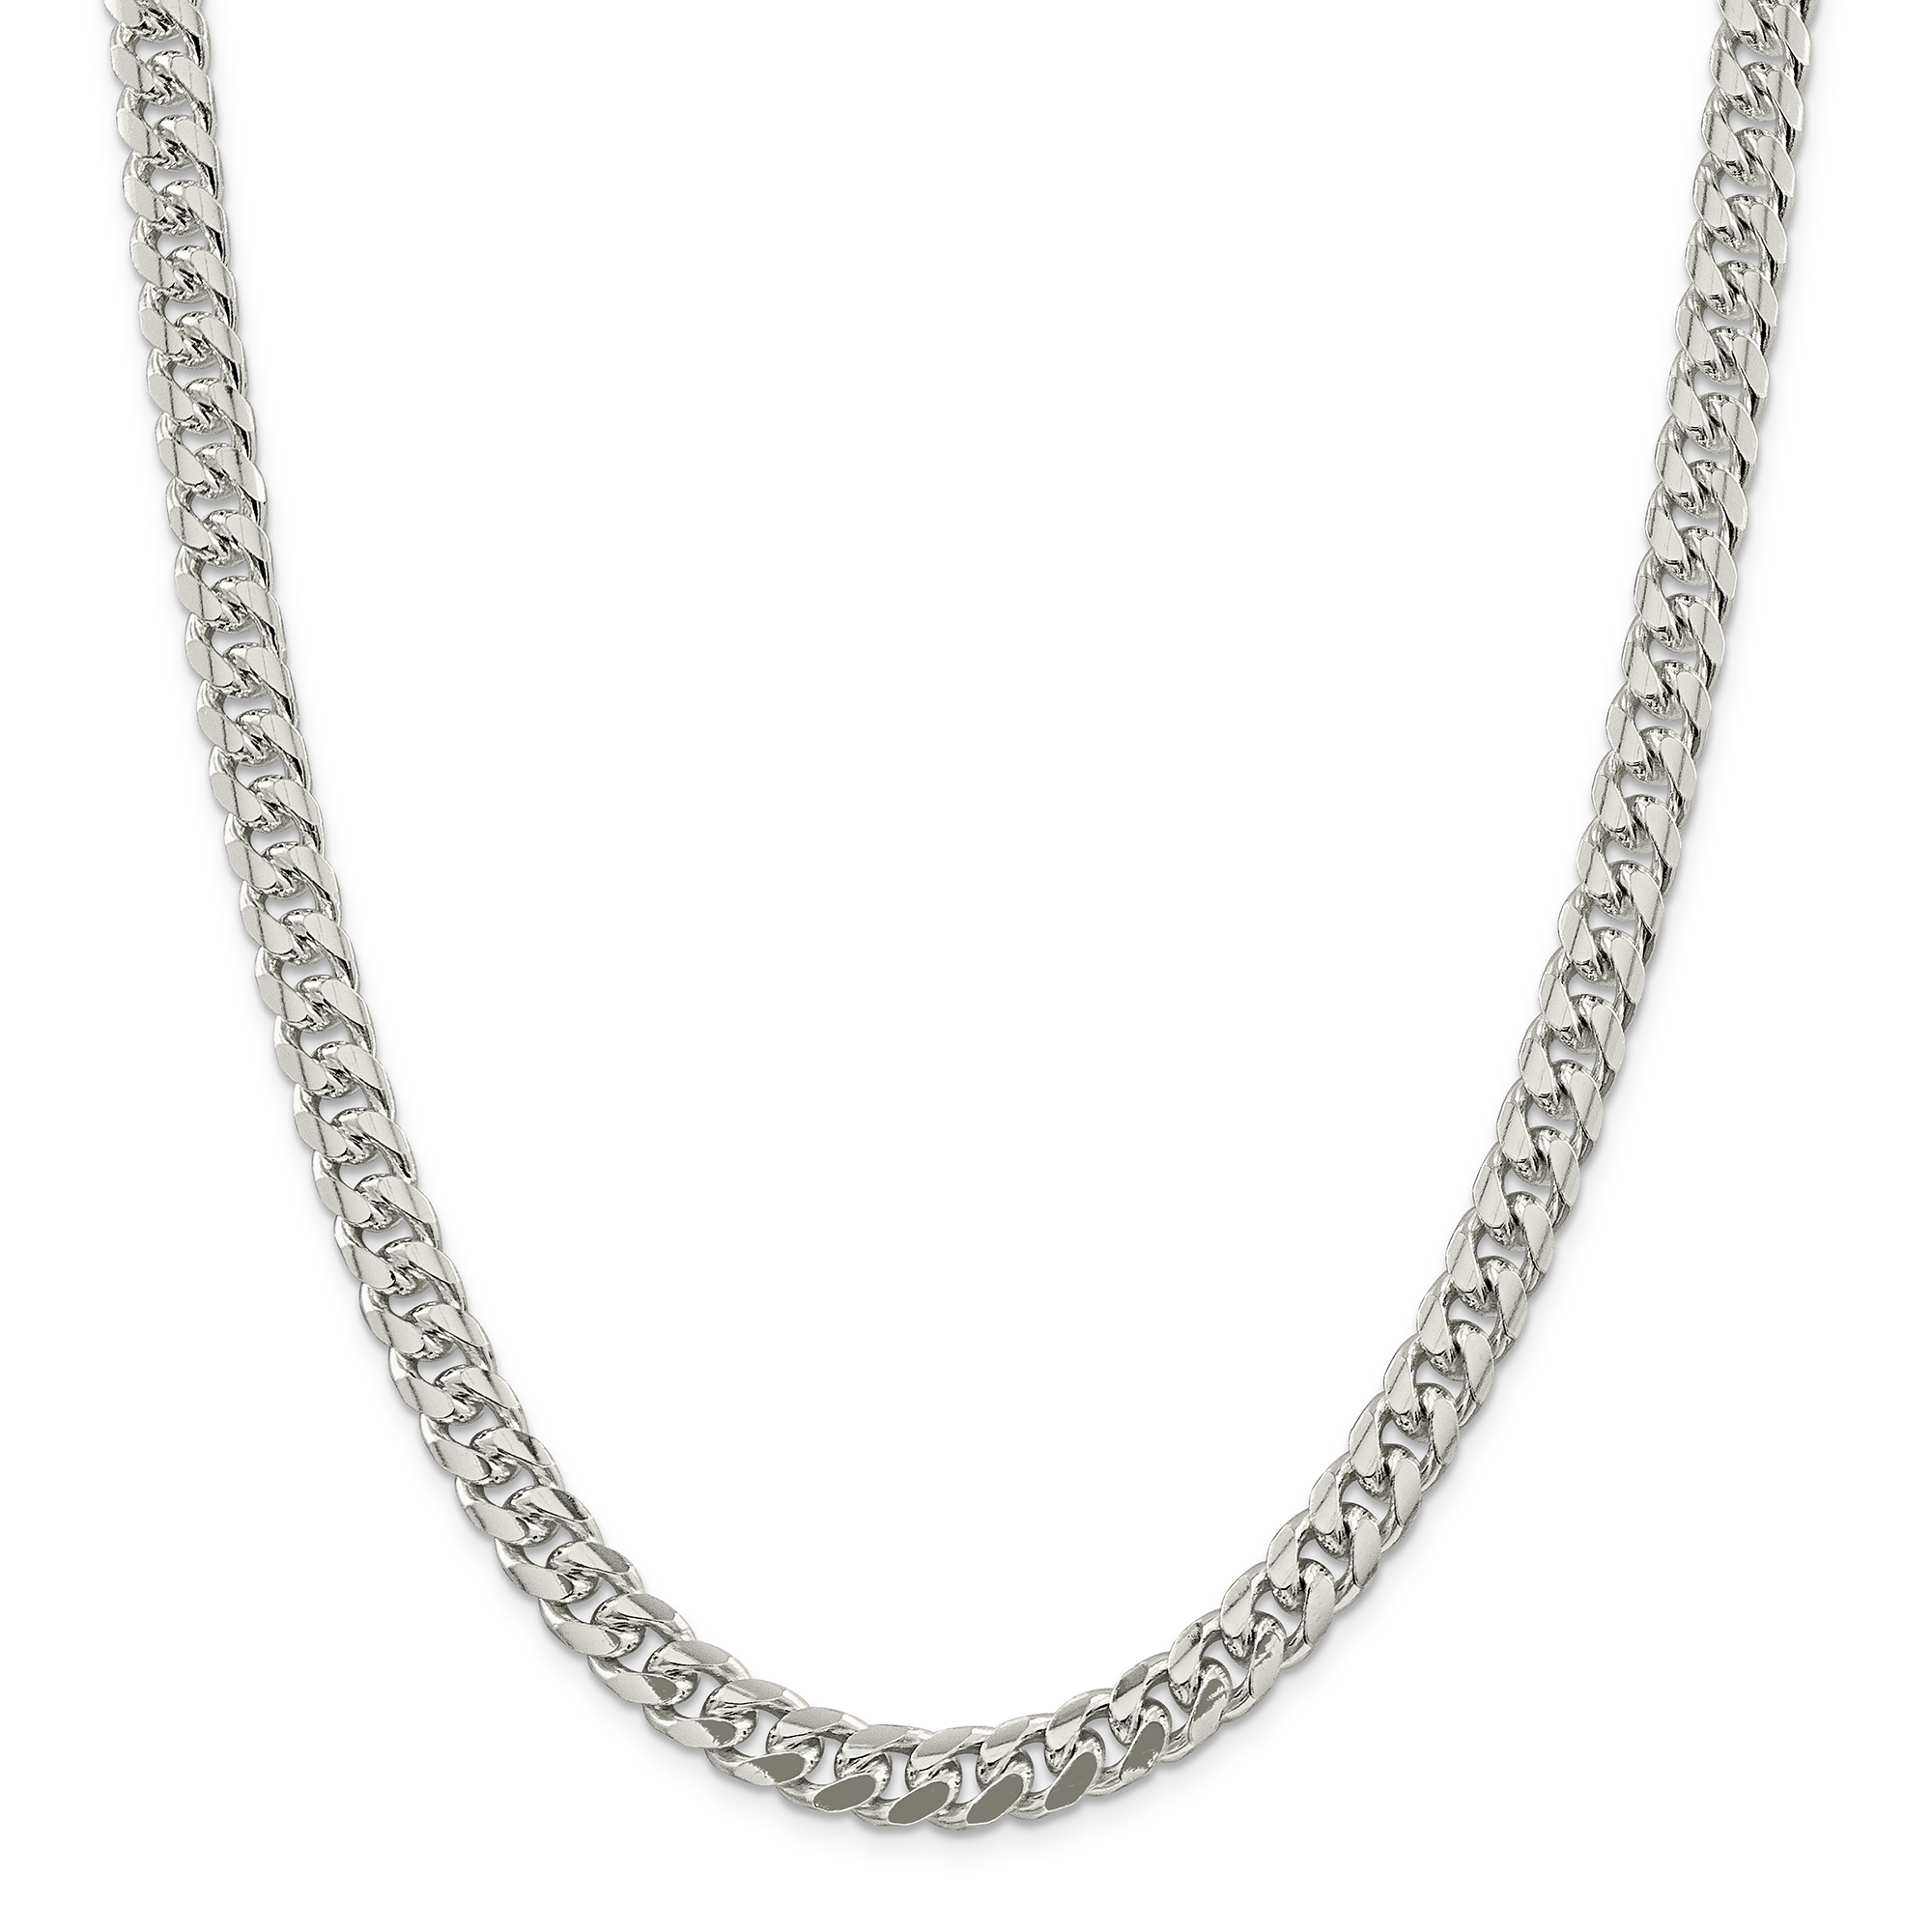 925 Sterling Silver 8.5mm Domed Curb Chain 20 Inch - image 5 de 5